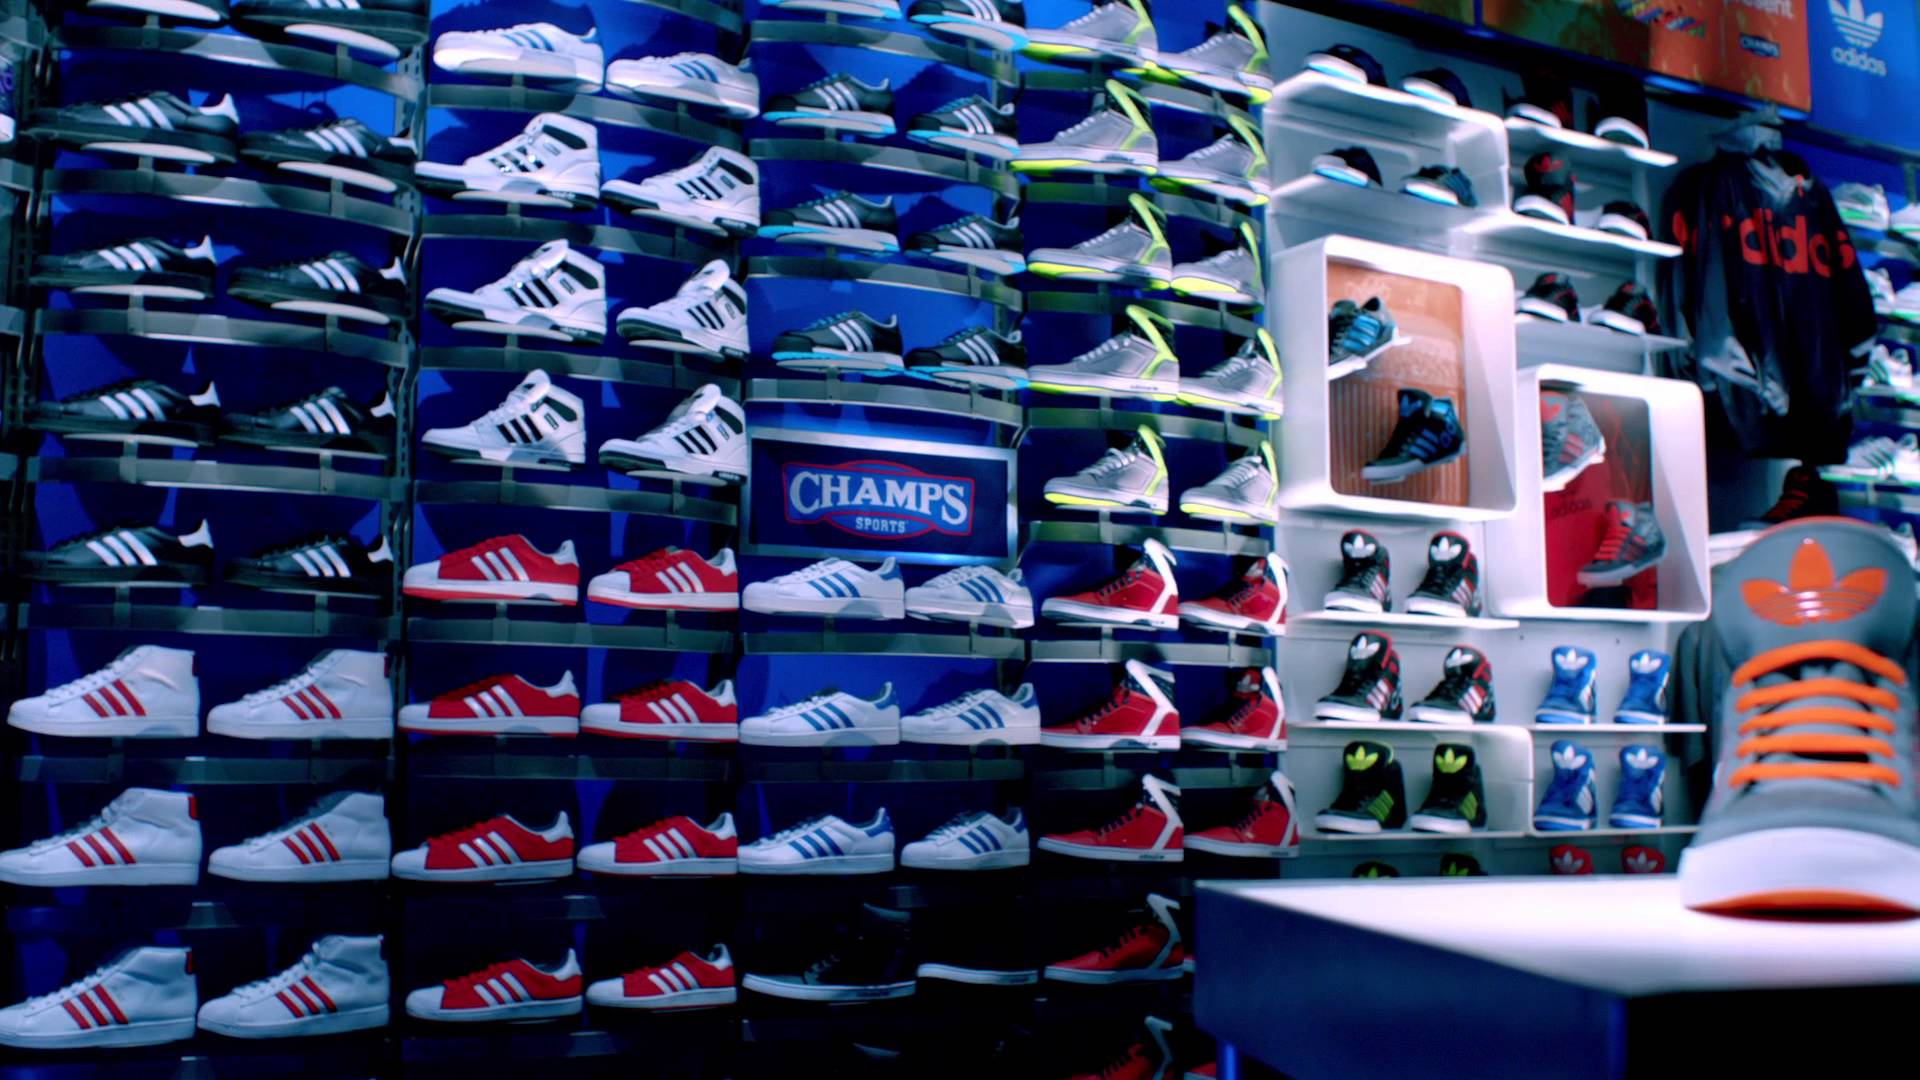 adidas champs sports